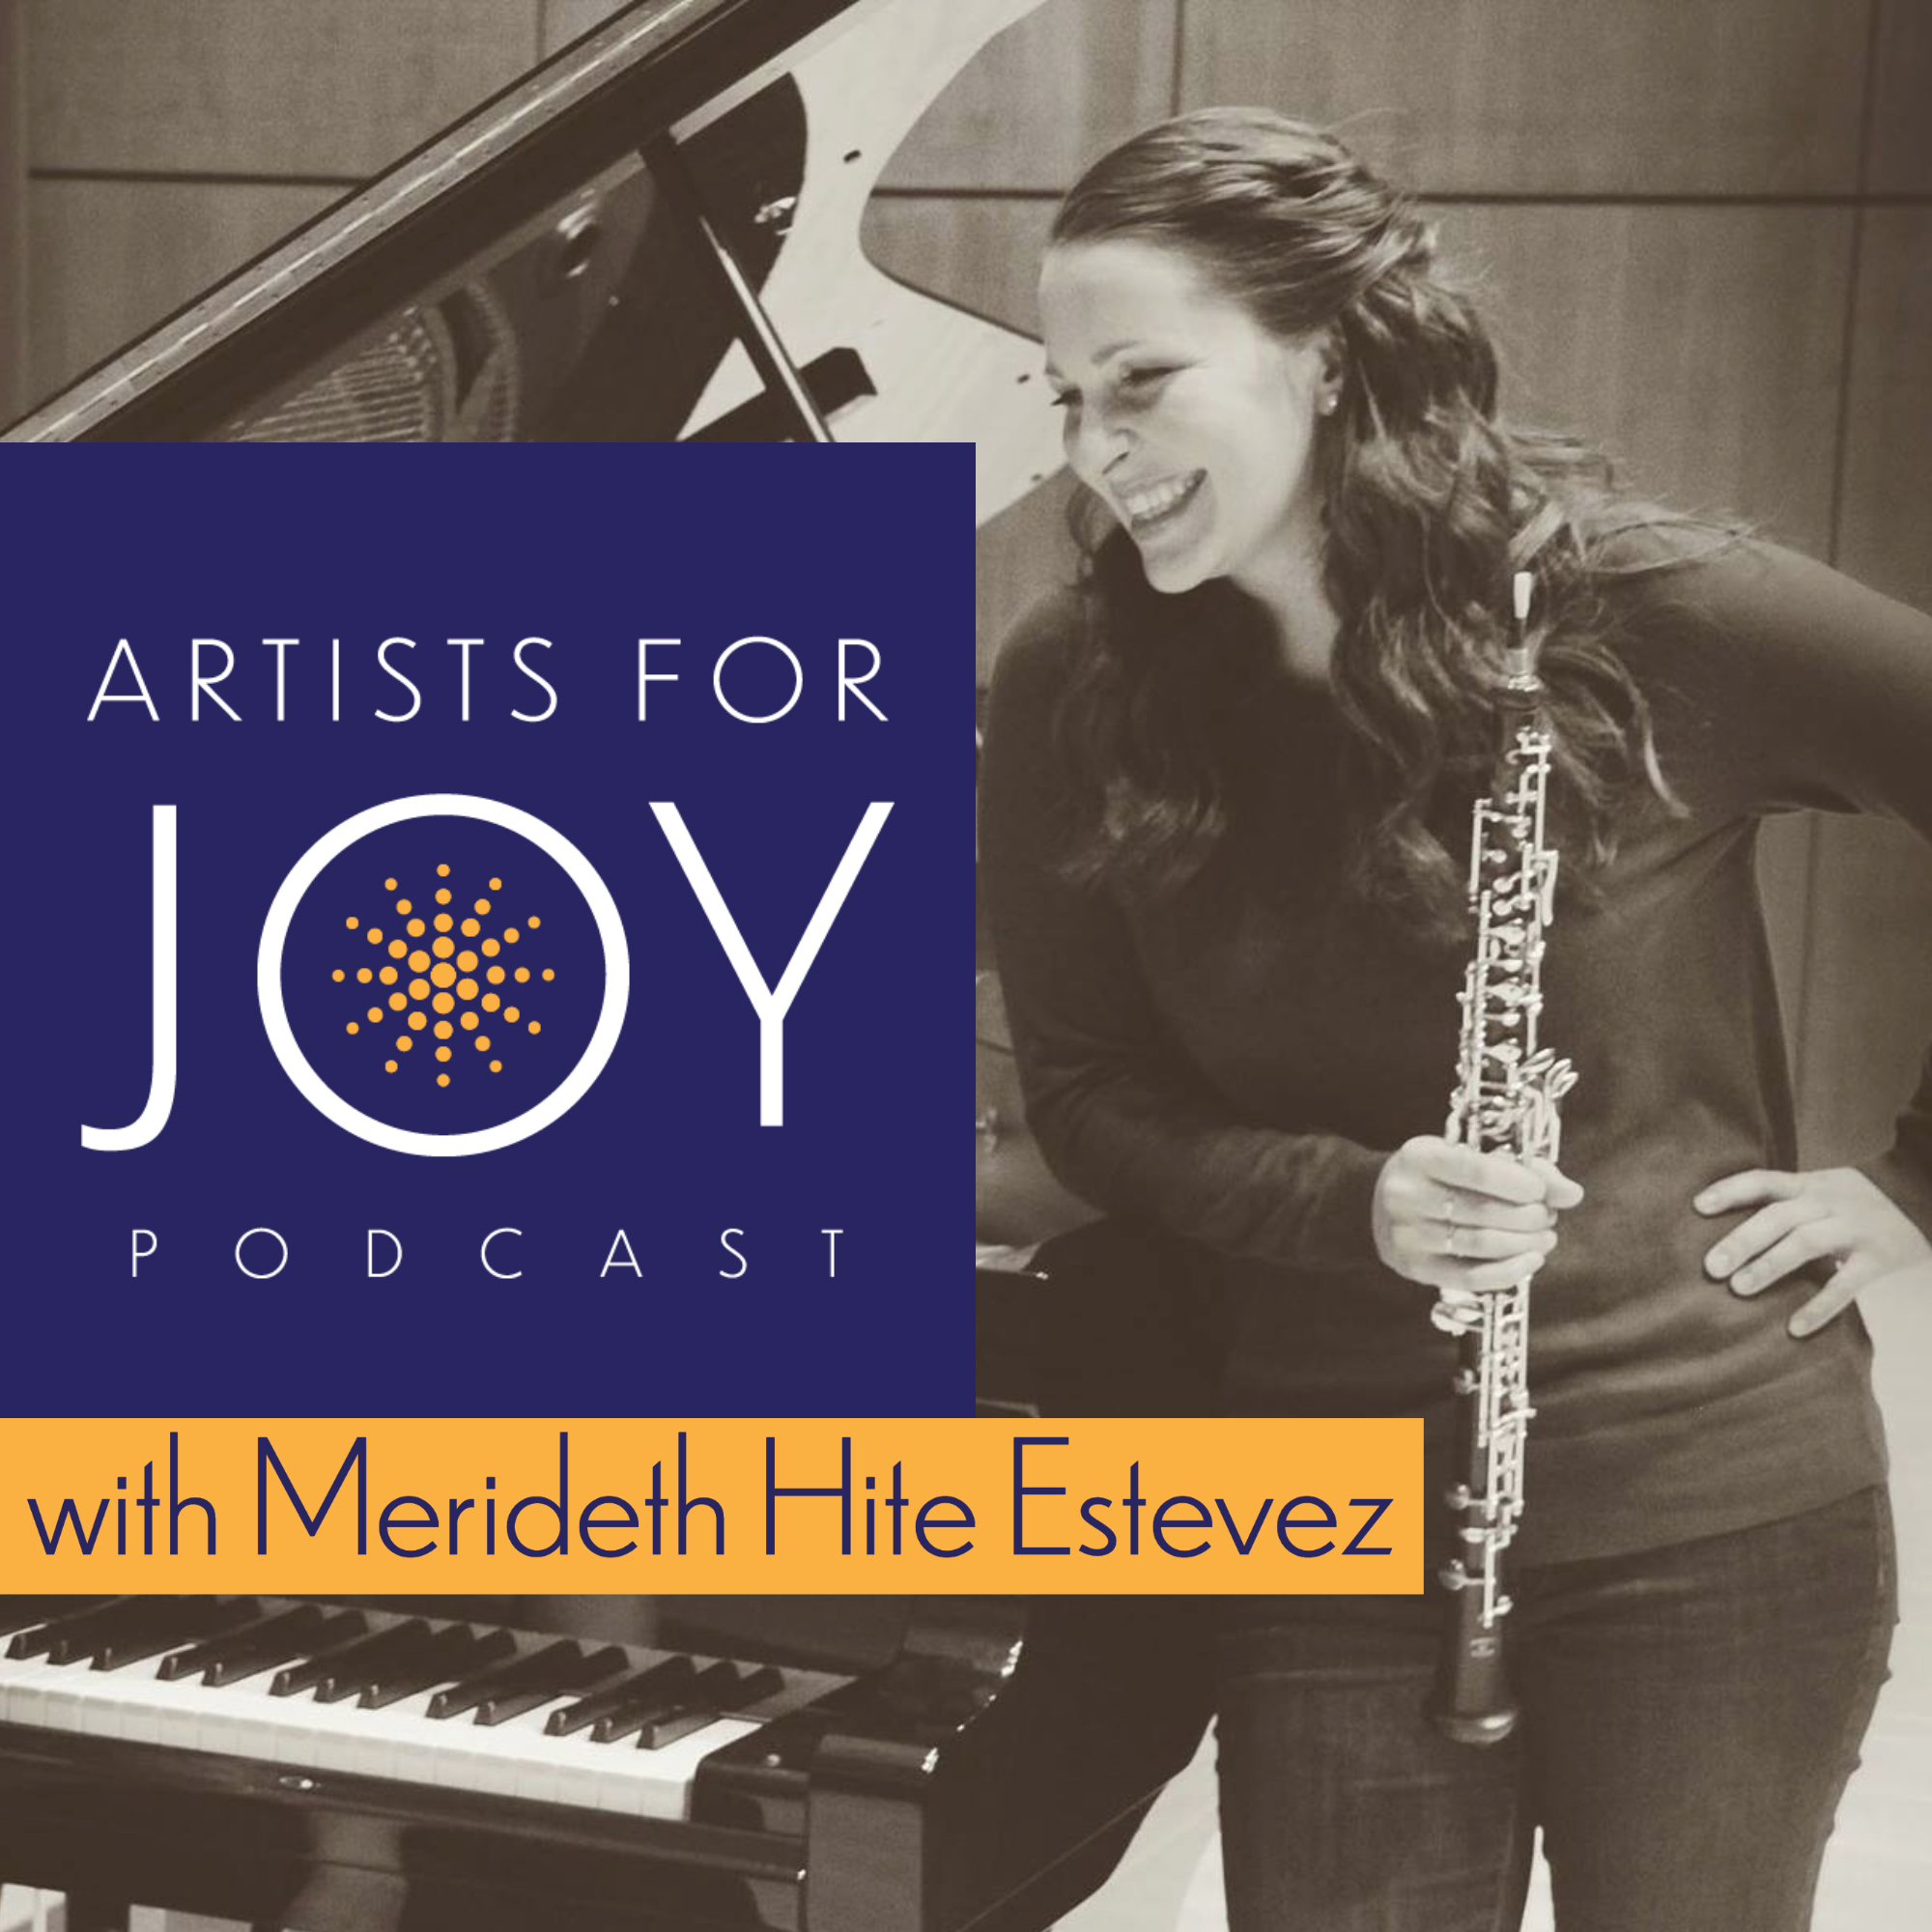 Artists for Joy